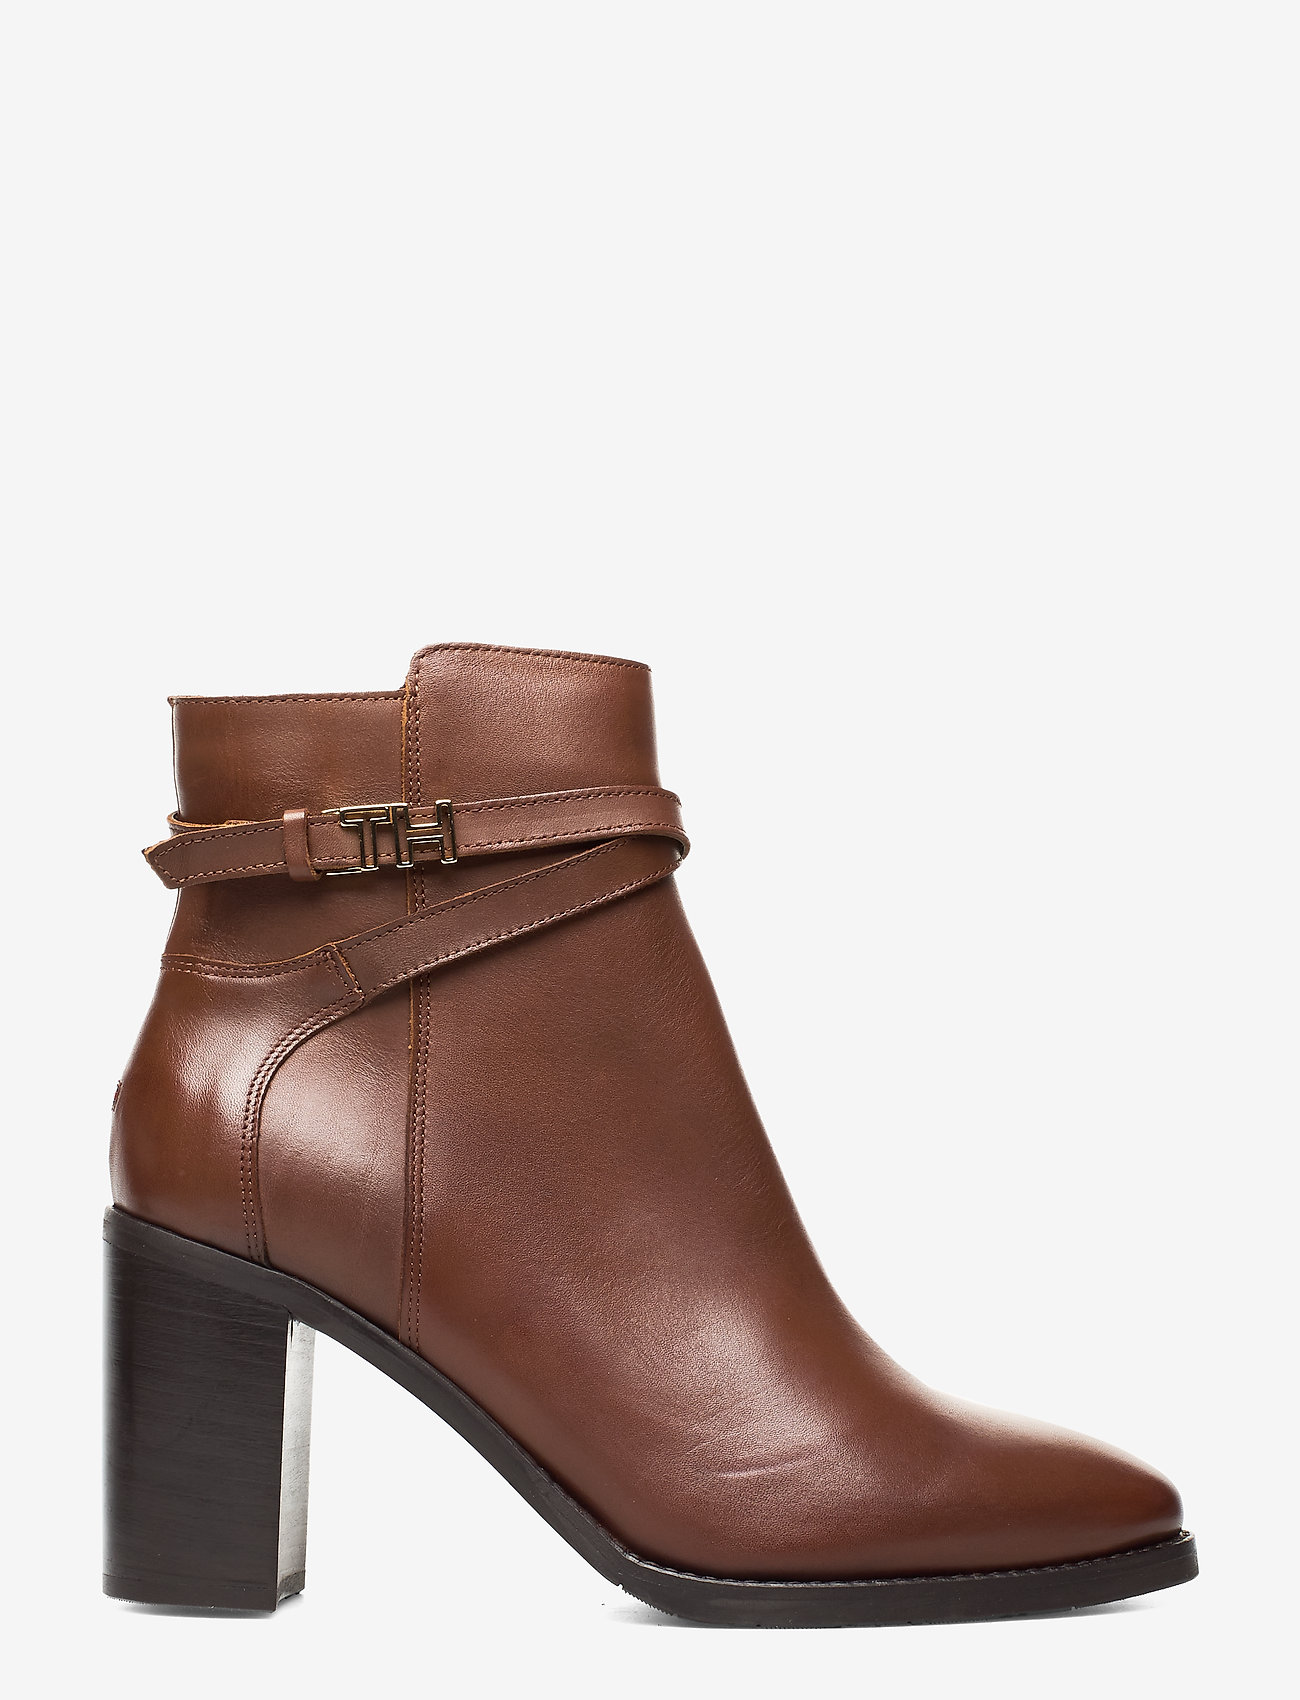 Tommy Hilfiger - TH HARDWARE LEATHER HIGH BOOT - ankelstøvletter med hæl - coffee - 1